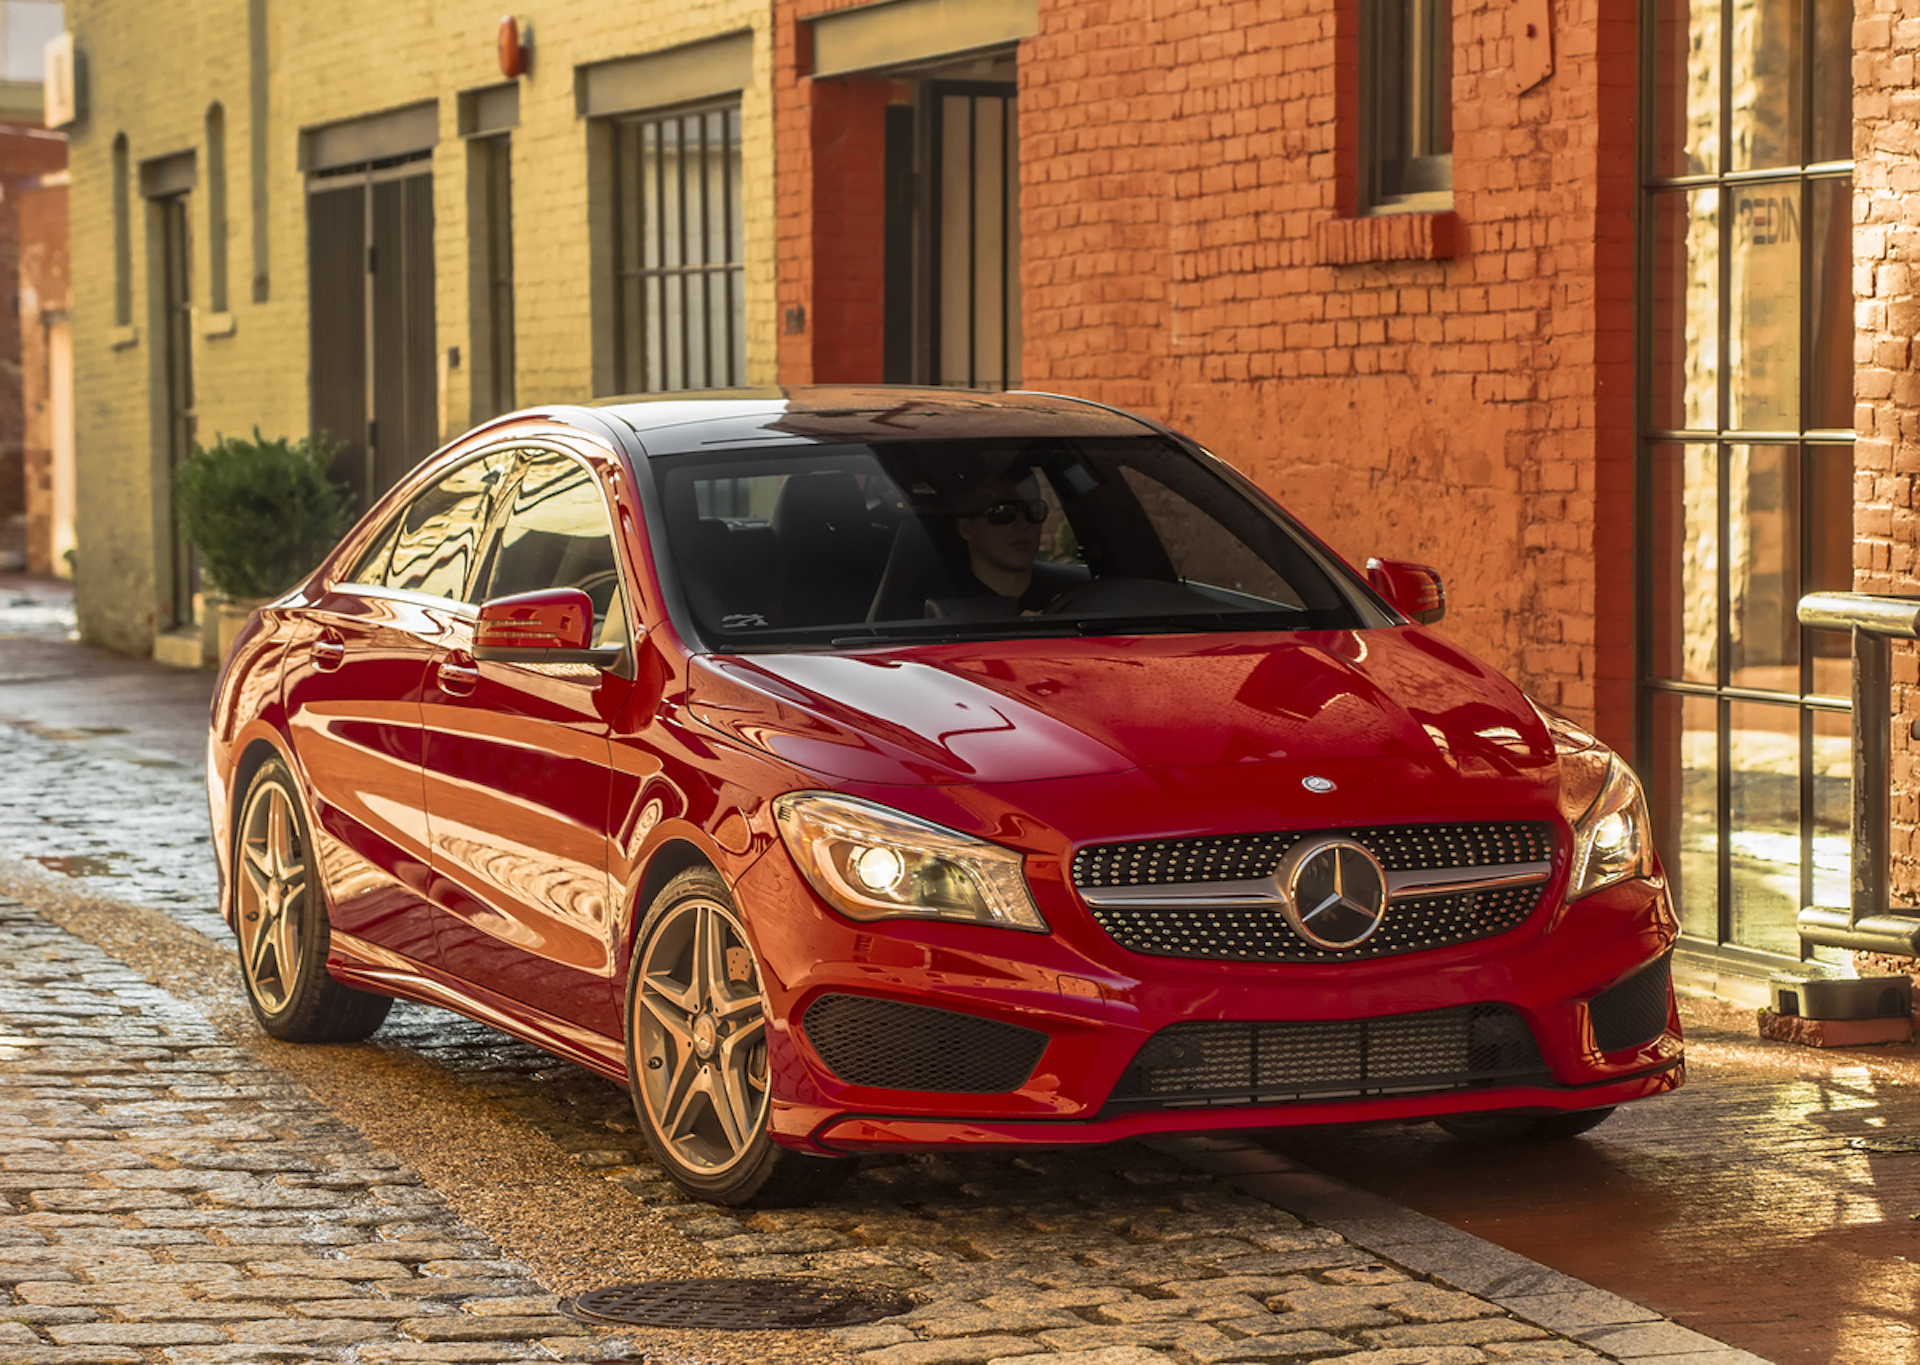 Mercedes-Benz CLA-Class Starting Price Rises To $32,425